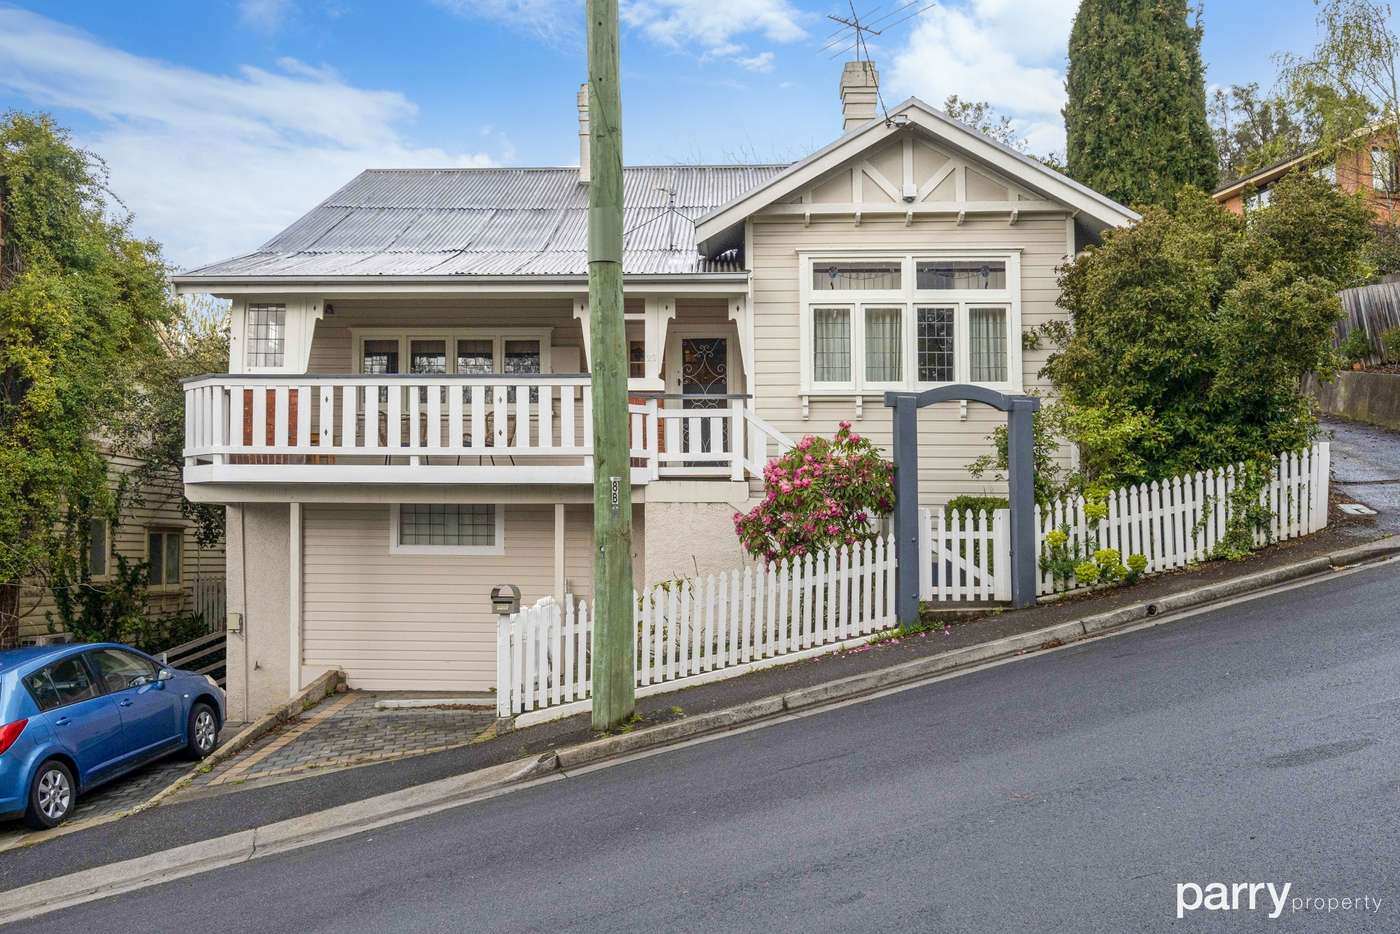 Main view of Homely house listing, 25 Tasma Street, East Launceston TAS 7250